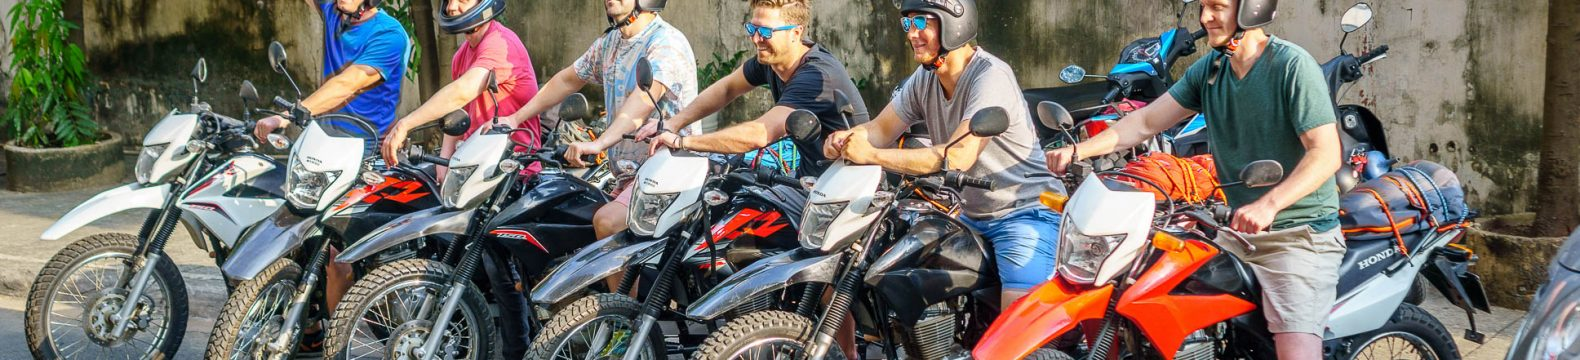 Rent Motorbikes in Vietnam for Travel